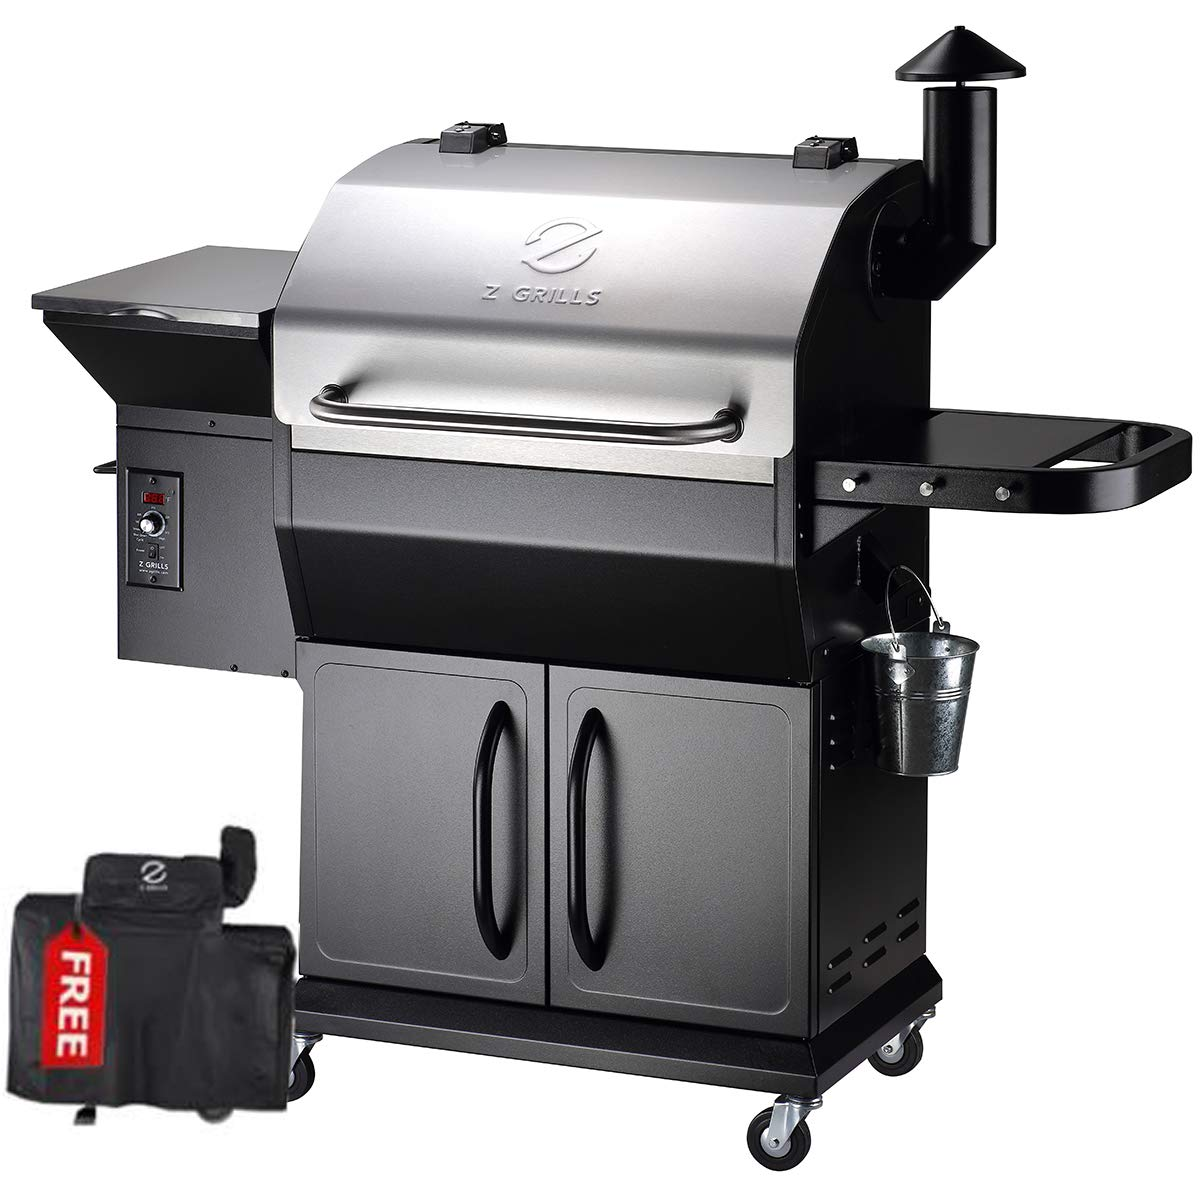 Z GRILLS 2020 Upgrated Wood Pellet Grill and Smoker 1000sqin bbq area 20LB Hopper 8-in-1 Grill Smart Digital control feeding Pellets (ZPG-1000E) + Free Cover